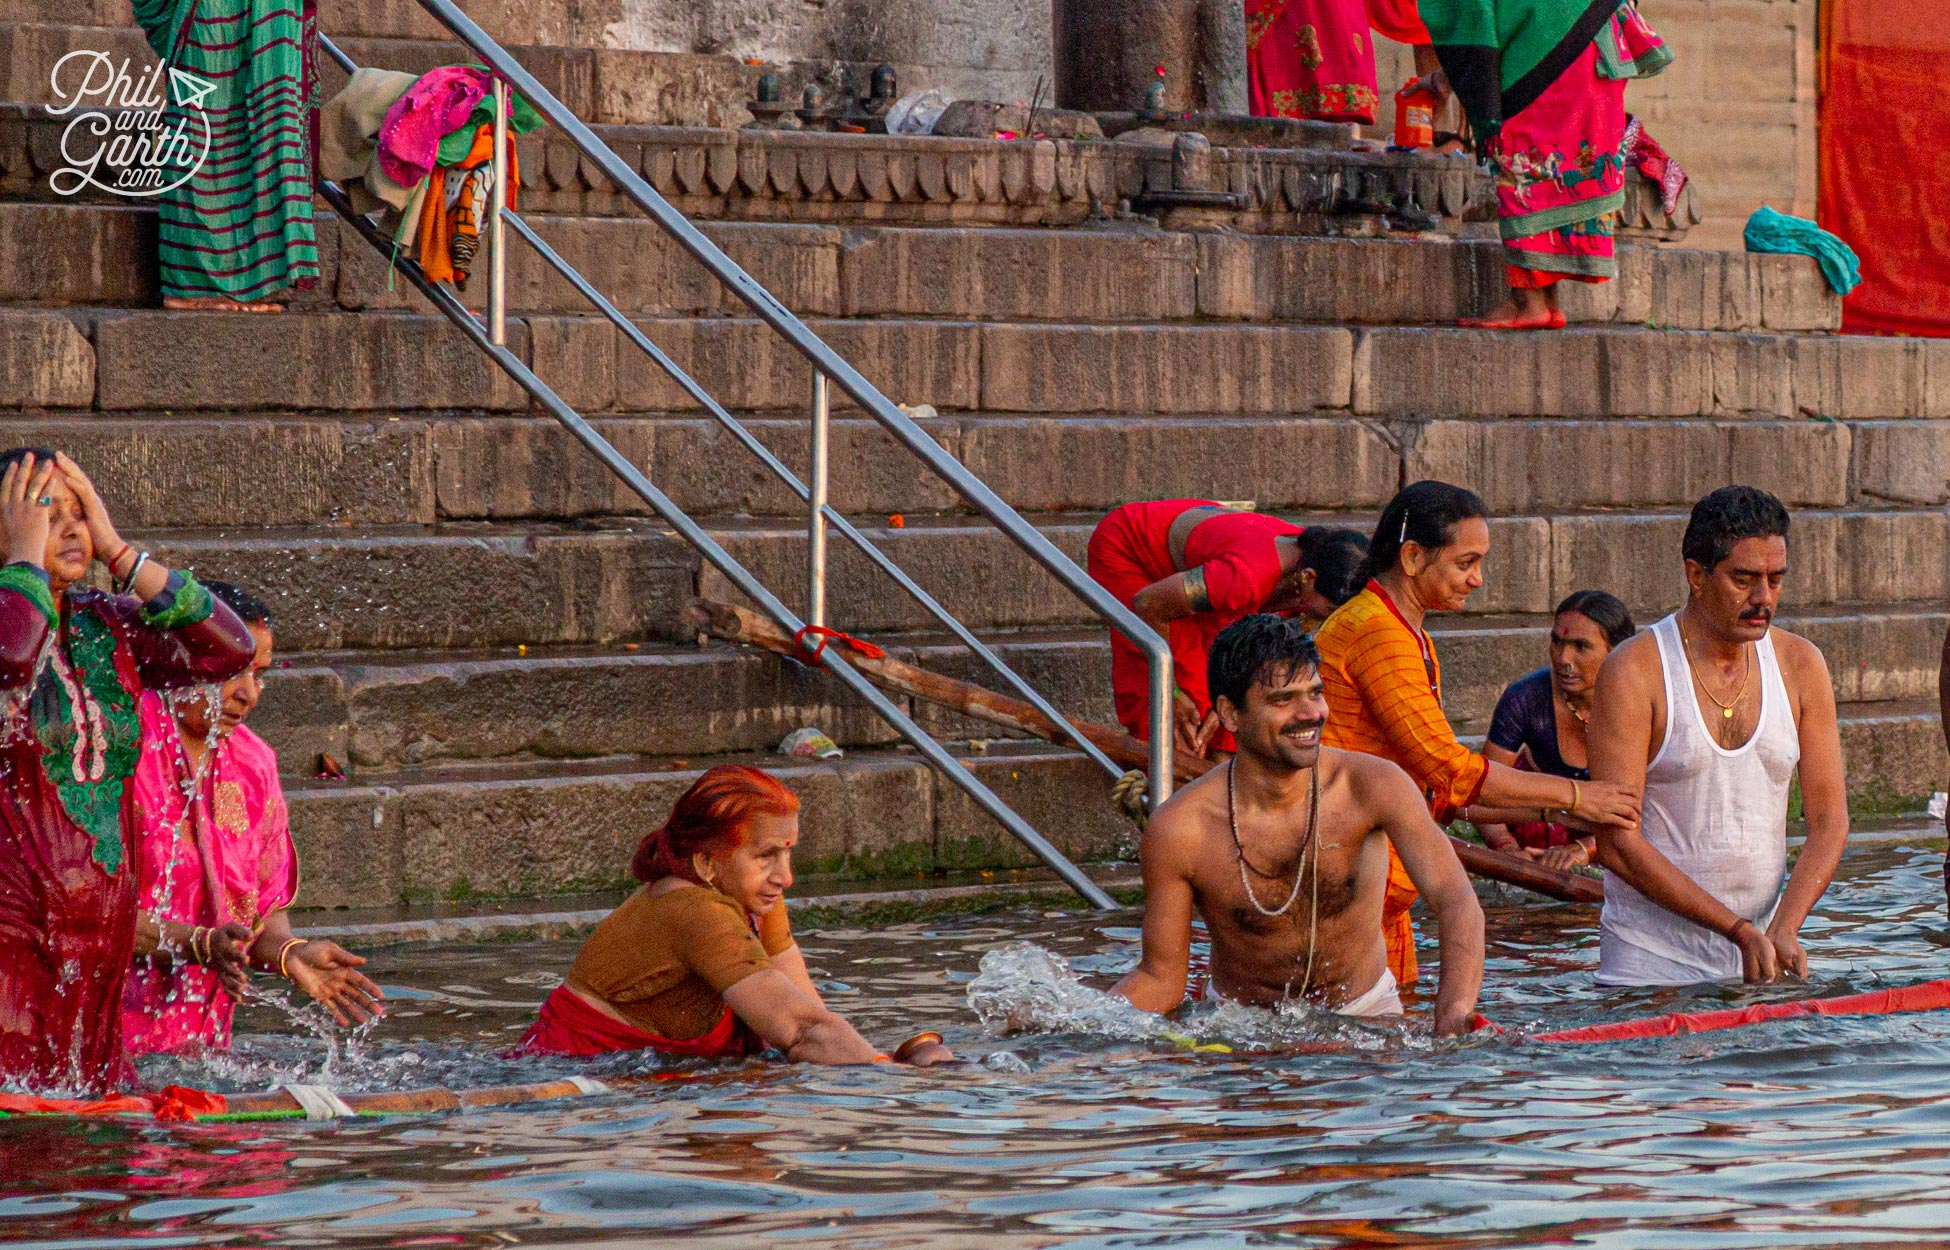 People bathing early morning in the River Ganges. The holy river is personfied as the Goddess Ganga